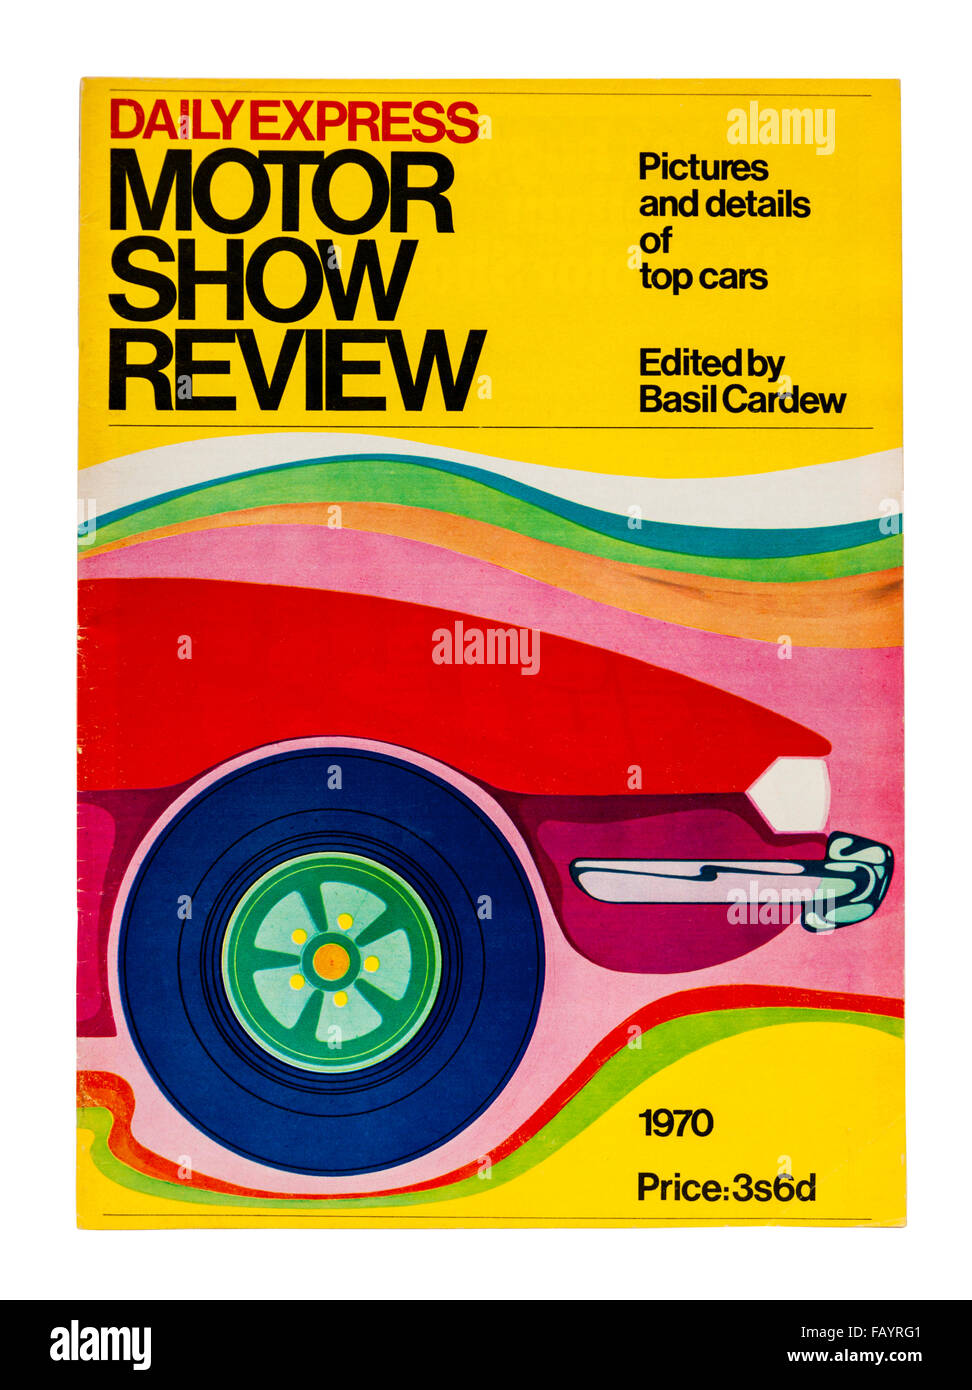 1970 Daily Express Motor Show Review magazine, featuring a guide to the cars available in the UK that year - Stock Image